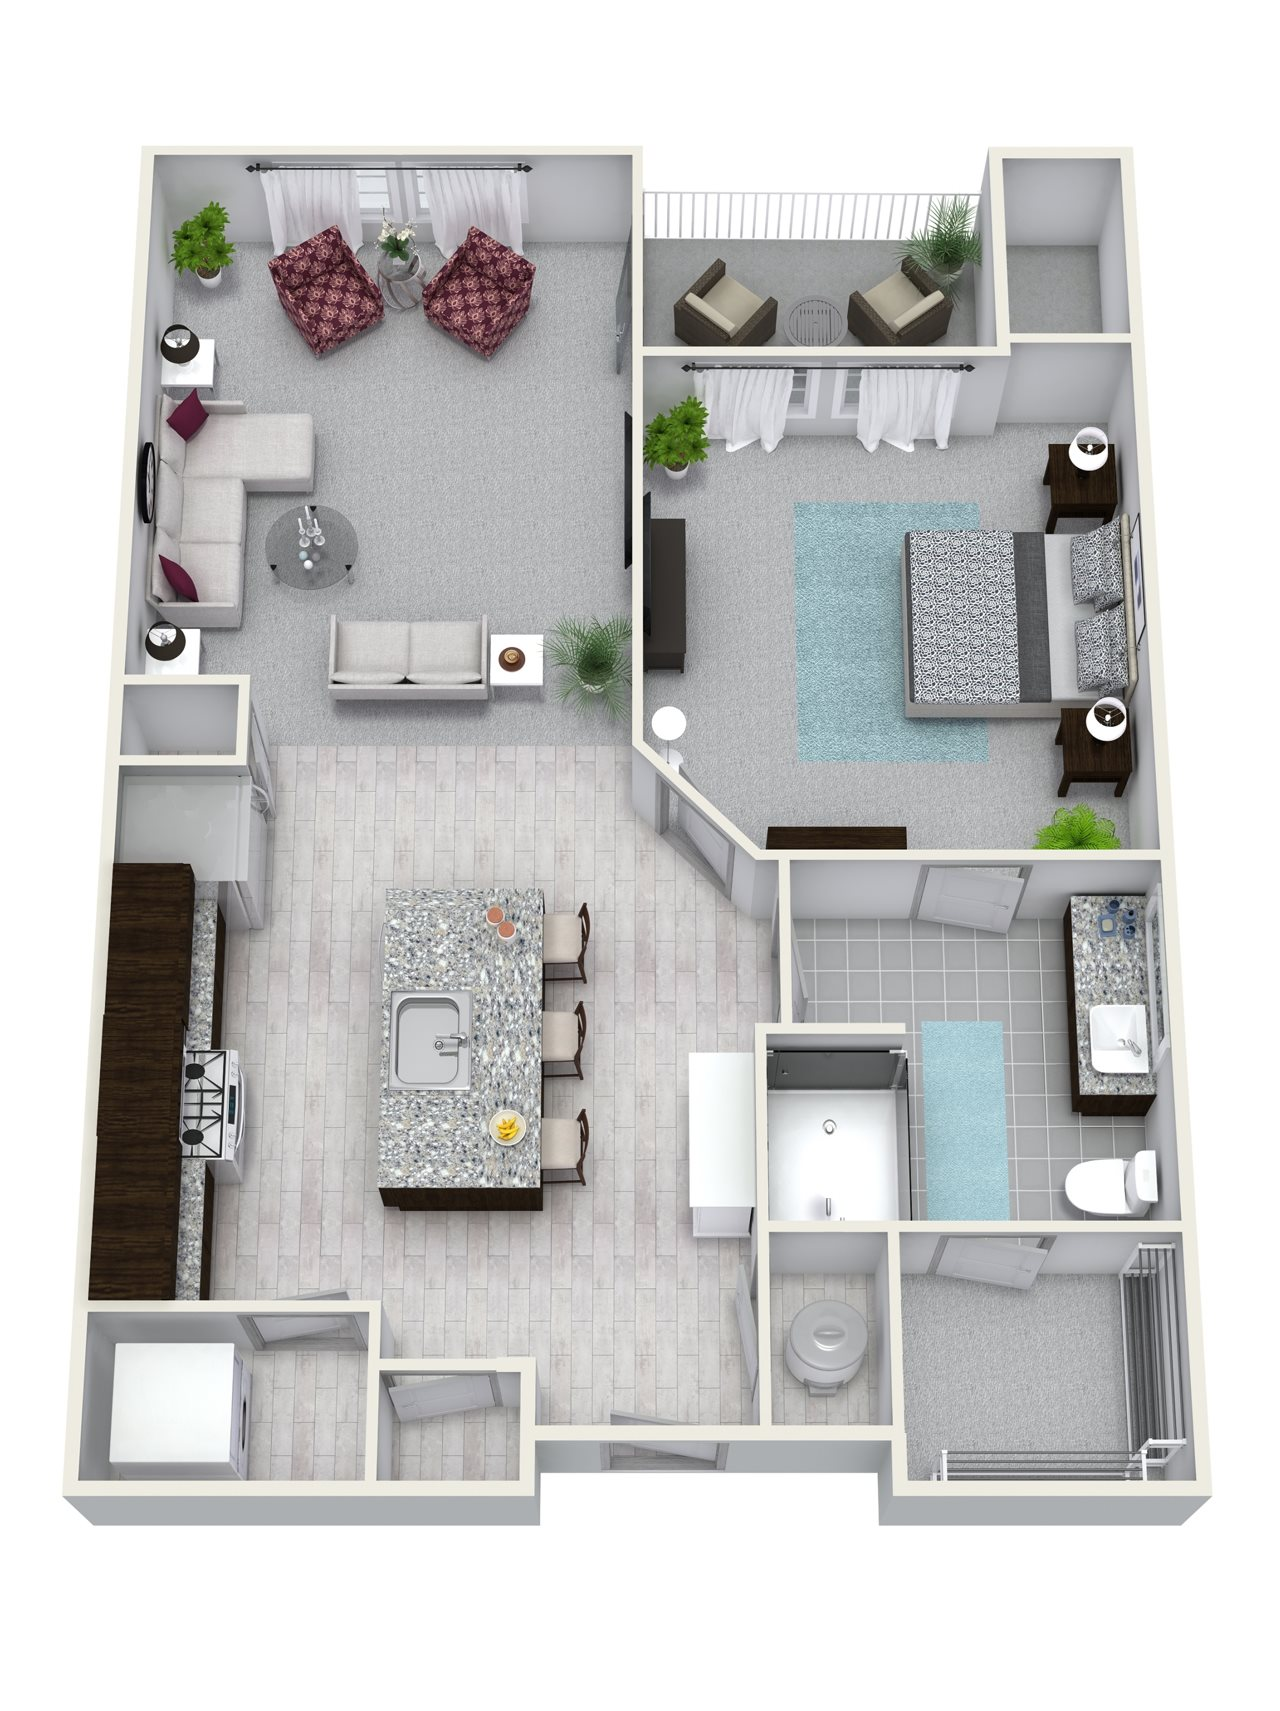 1 Bedroom 1 Bath 699 sqft A4 Floor Plan 4